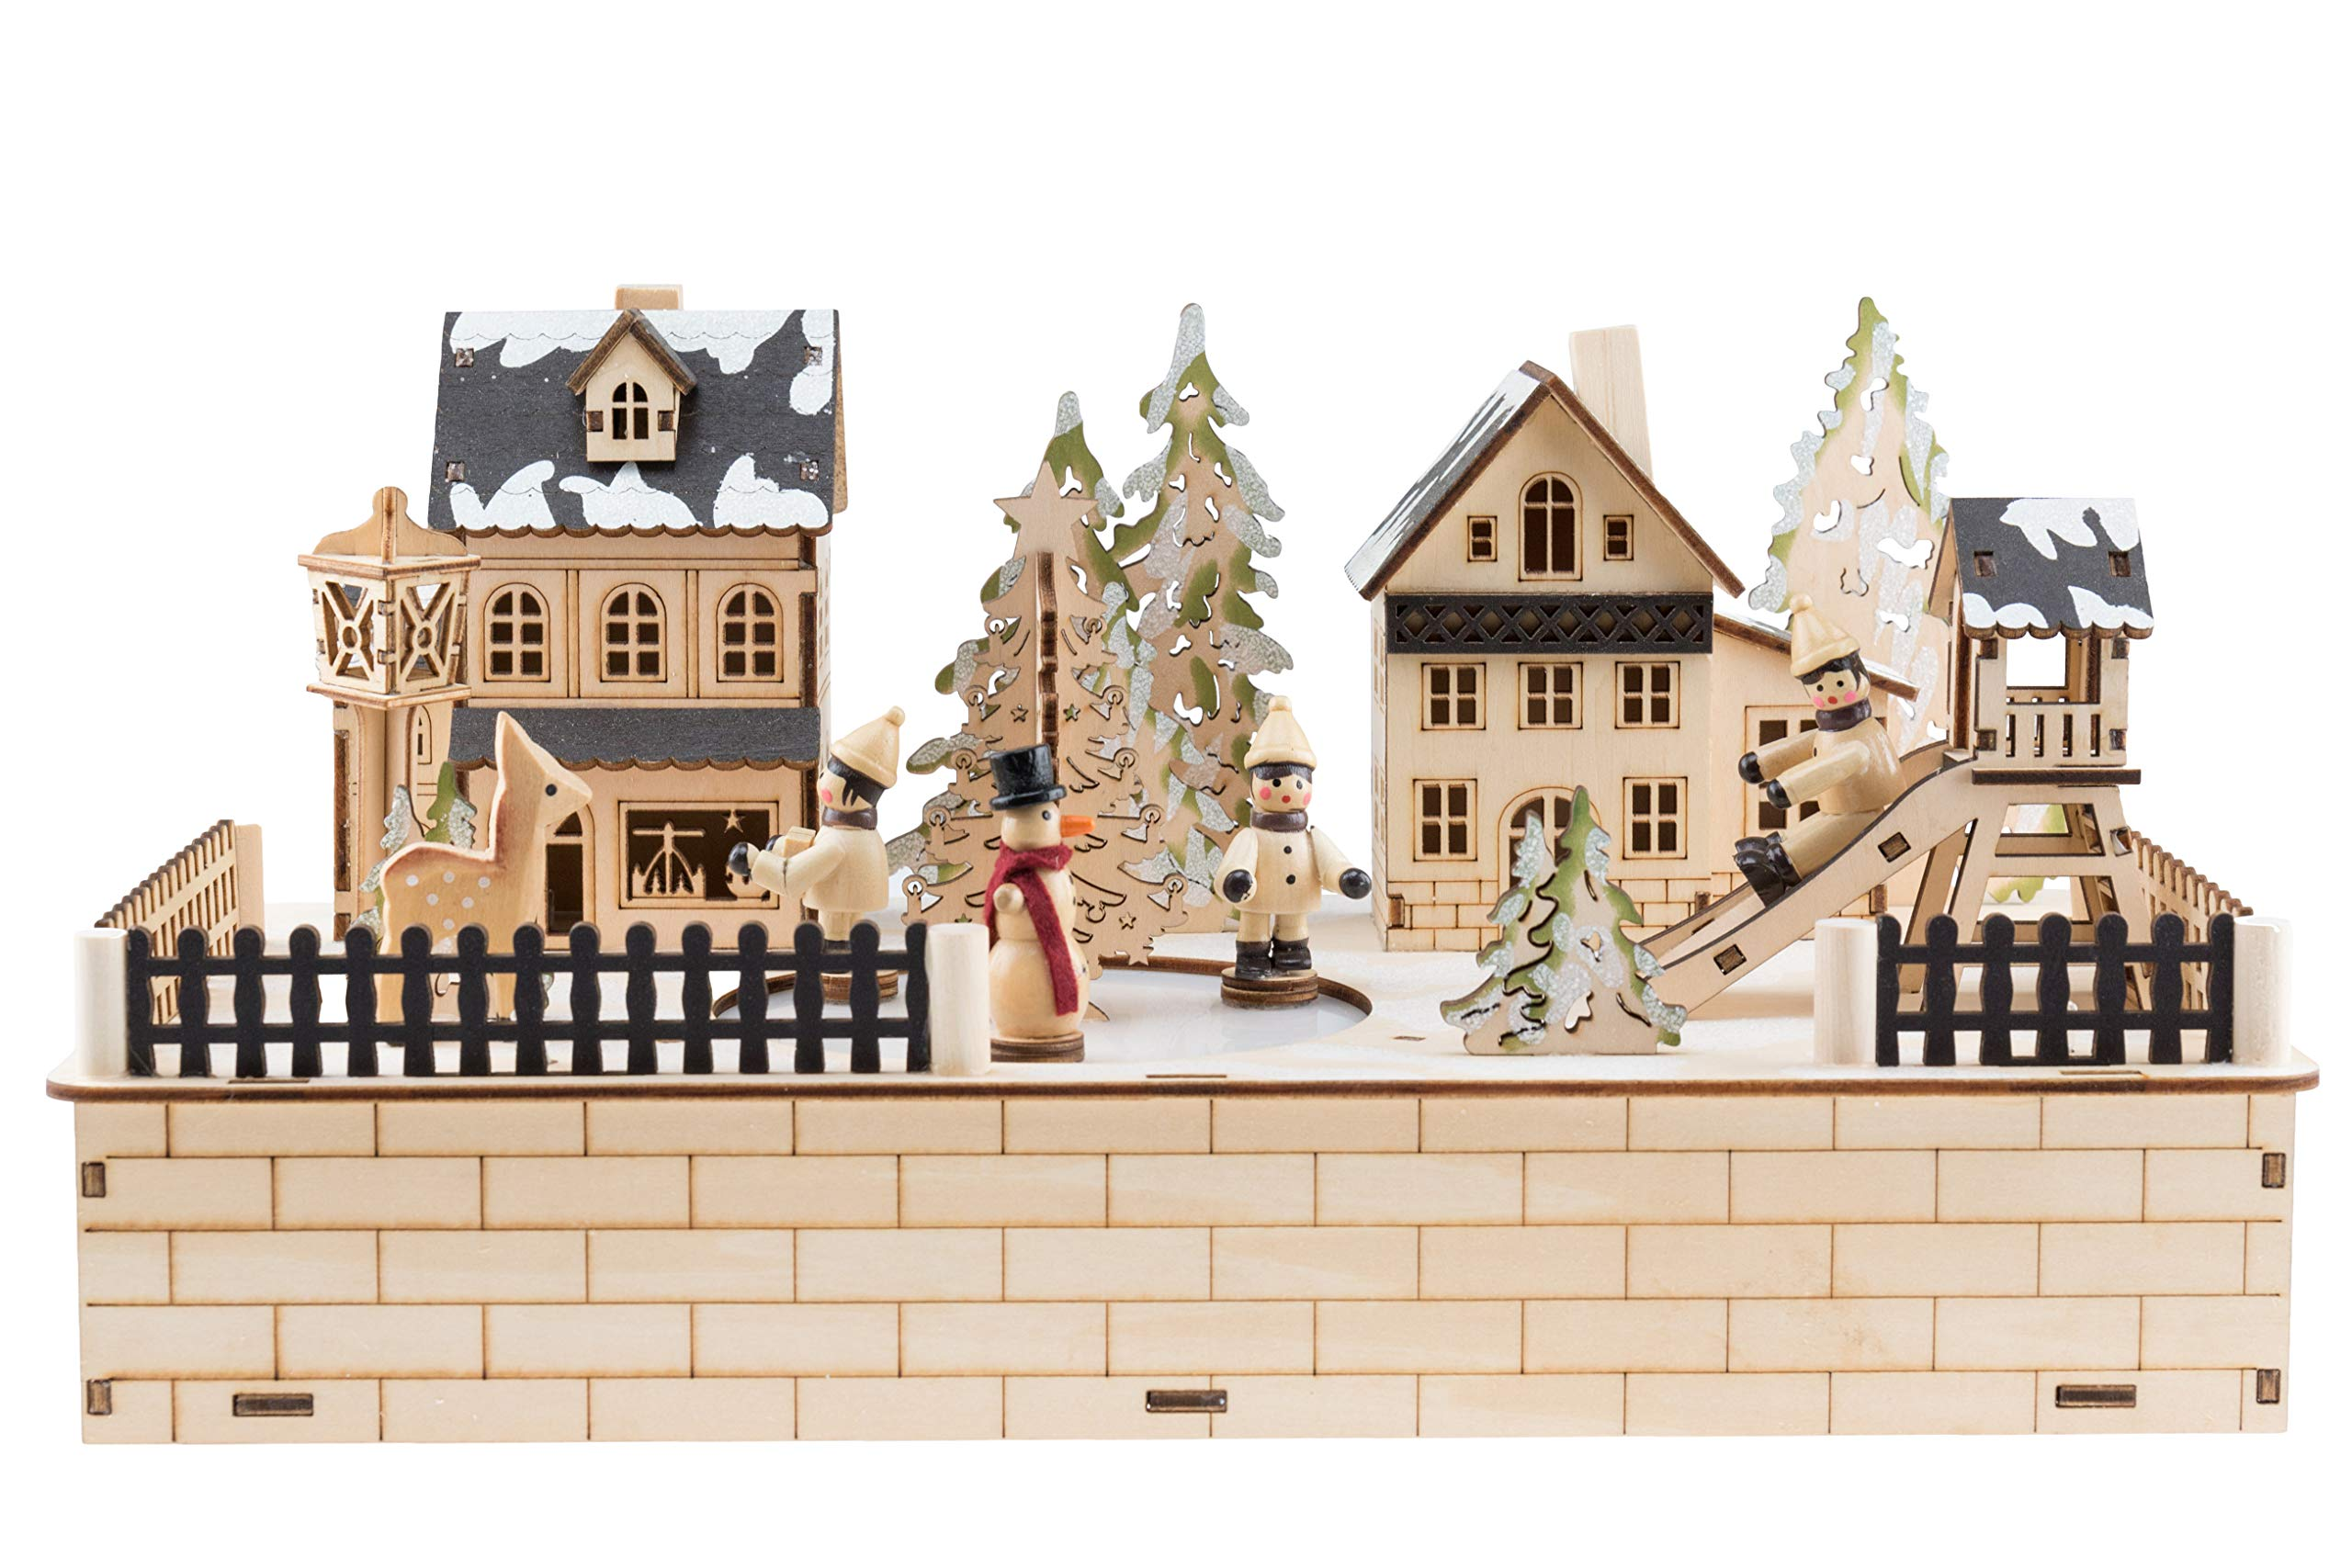 Clever Creations Traditional Winter Ice Skating Village Christmas Decoration | Battery Operated Ice Skating Rink and LED Christmas Lights | Animated 2'' Snowman and Children Figures on Frozen Pond